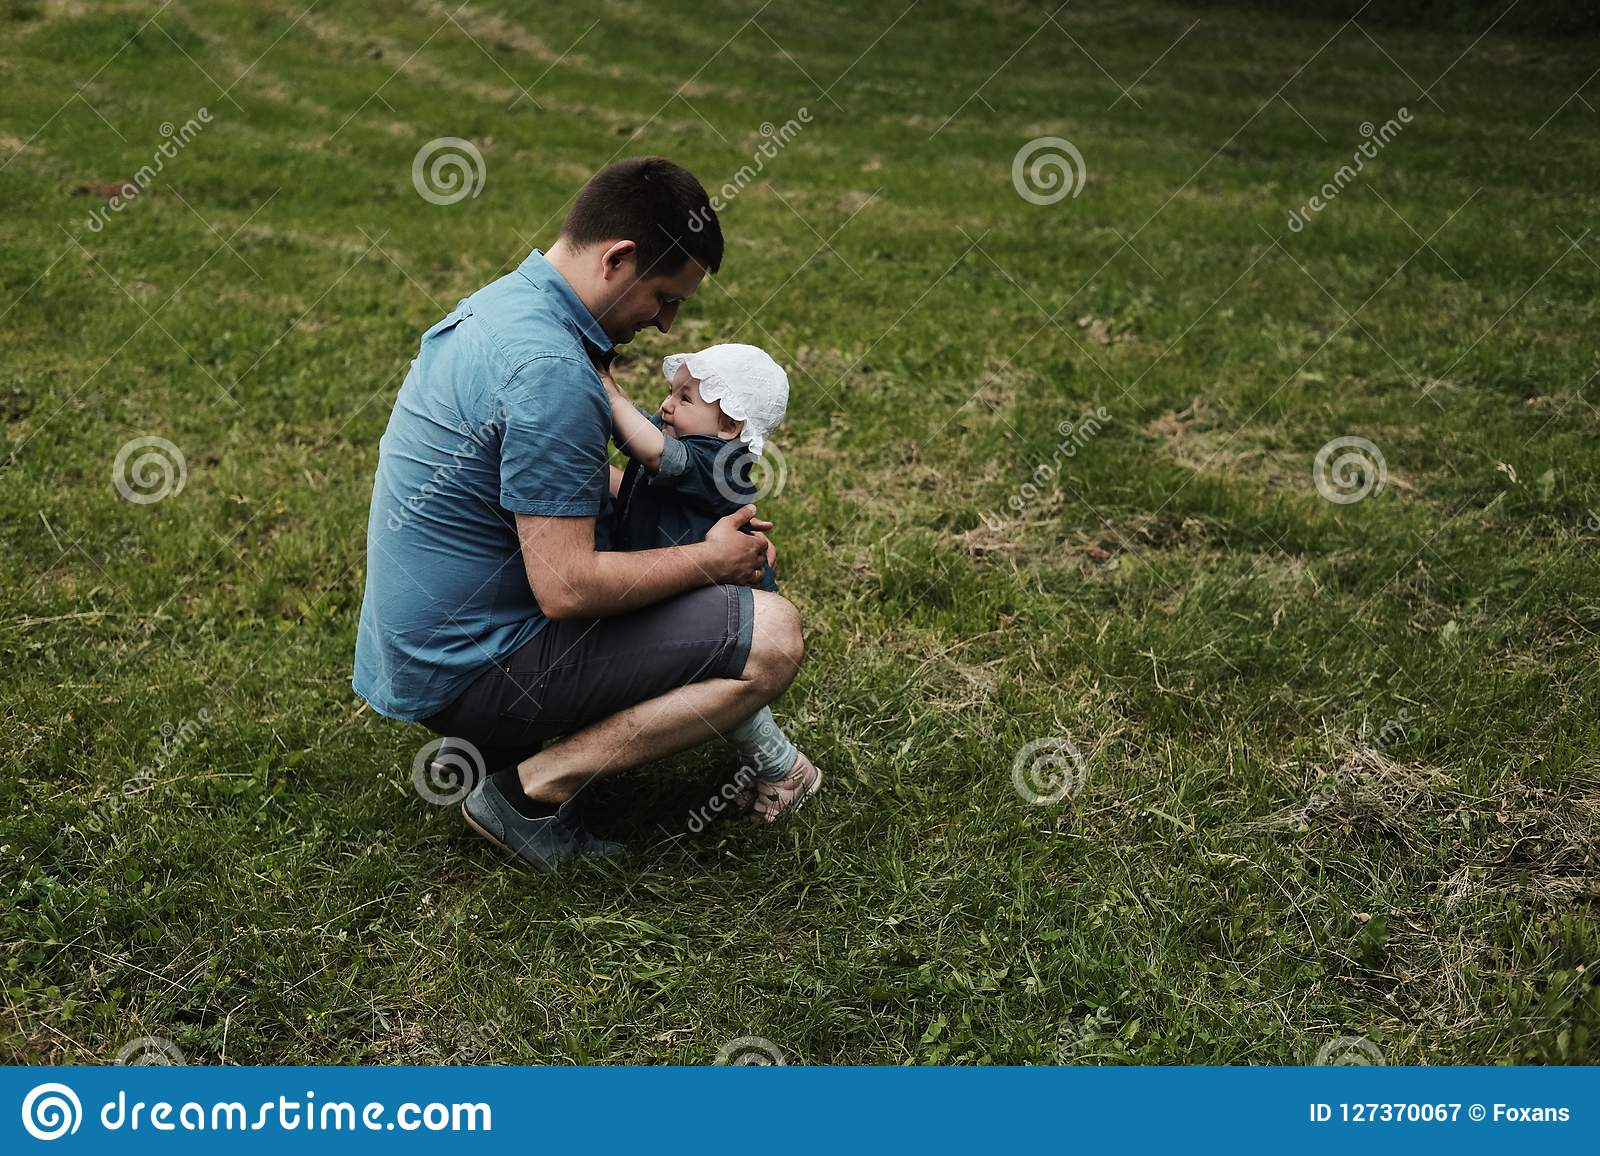 A daughter and a father huging in a park